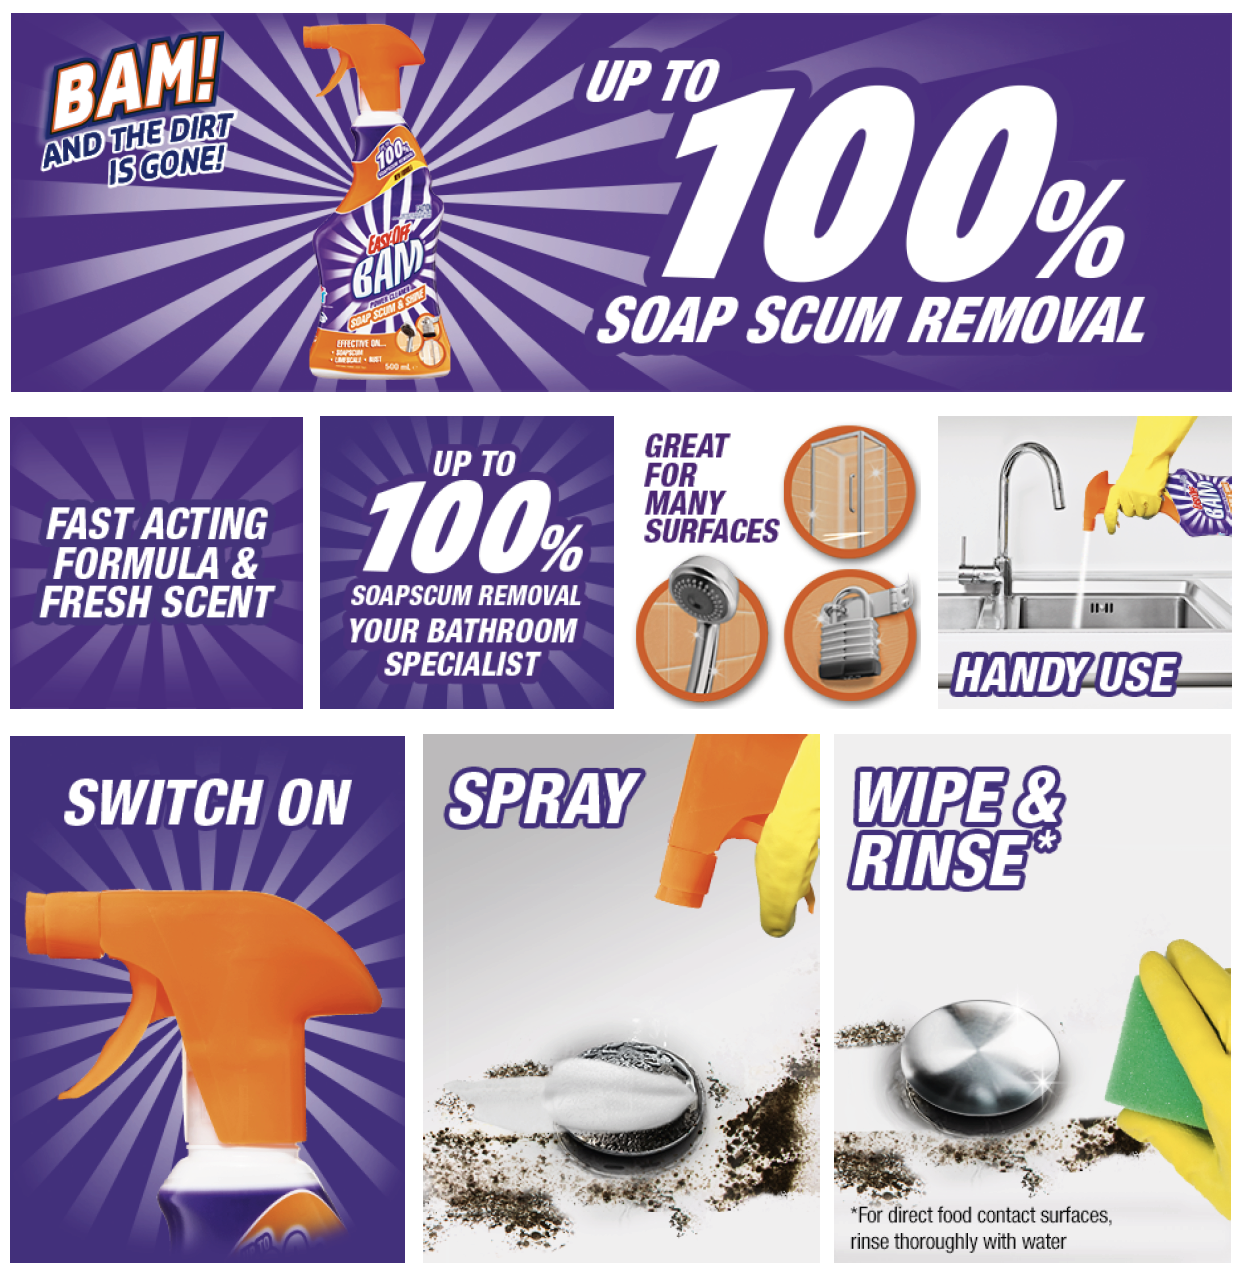 Easy Off Bam Soap Scum and Shine_Infographic_1244x1278